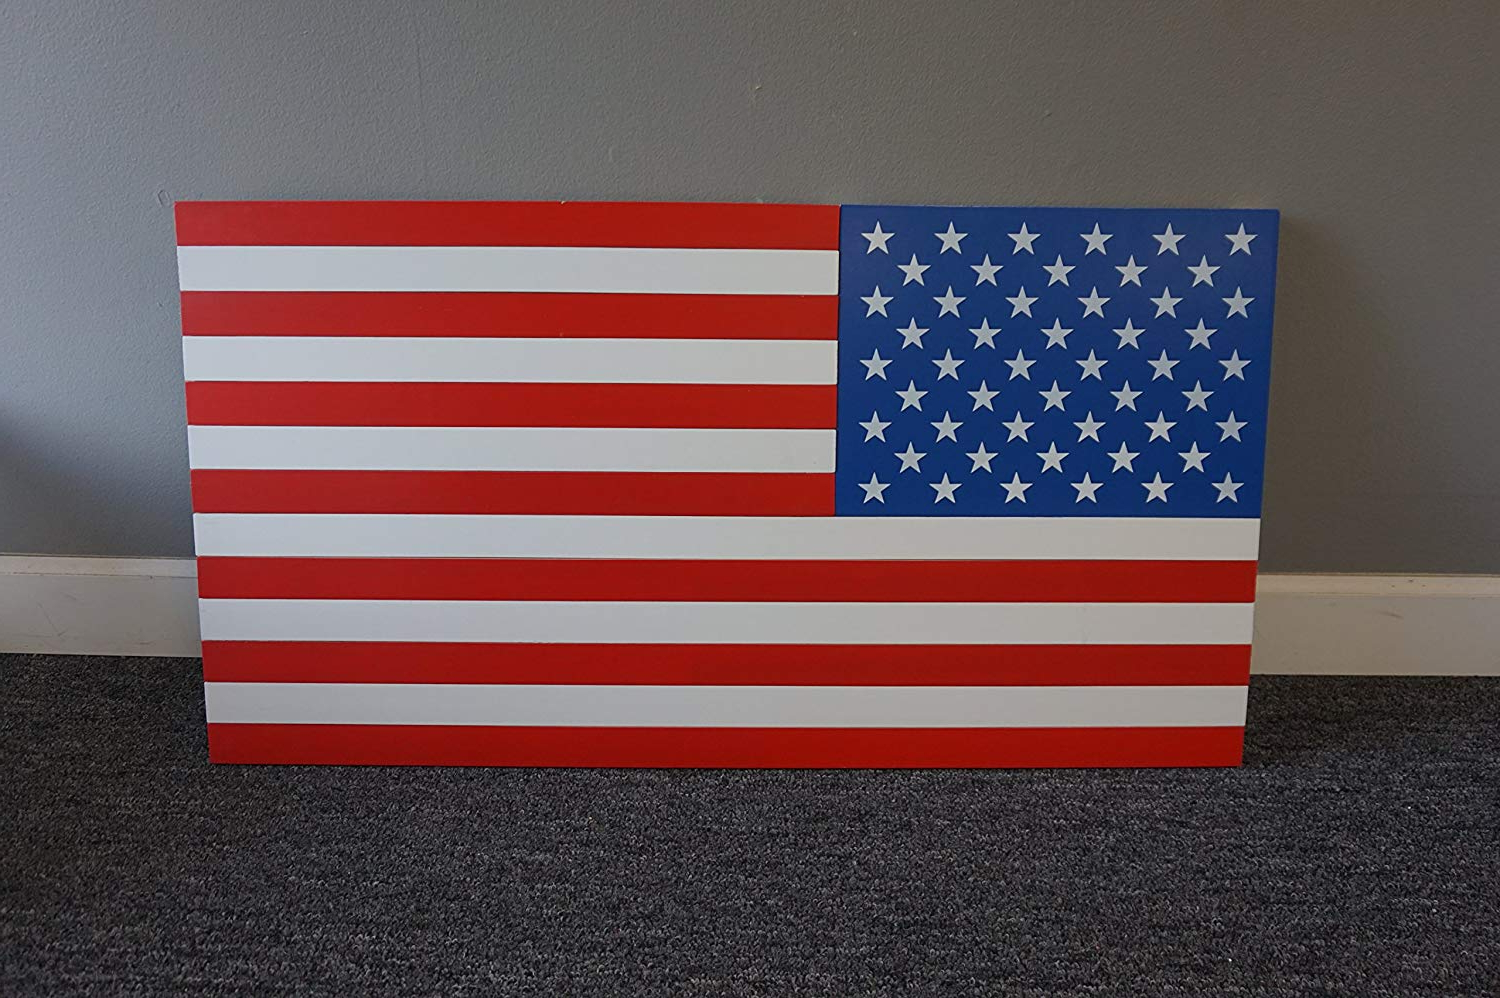 "American Flag 3D Wall Decor Intended For Trendy Amazon: 36"" X 19"" Handmade Patriotic Wooden Americana Flag 3D (View 6 of 20)"